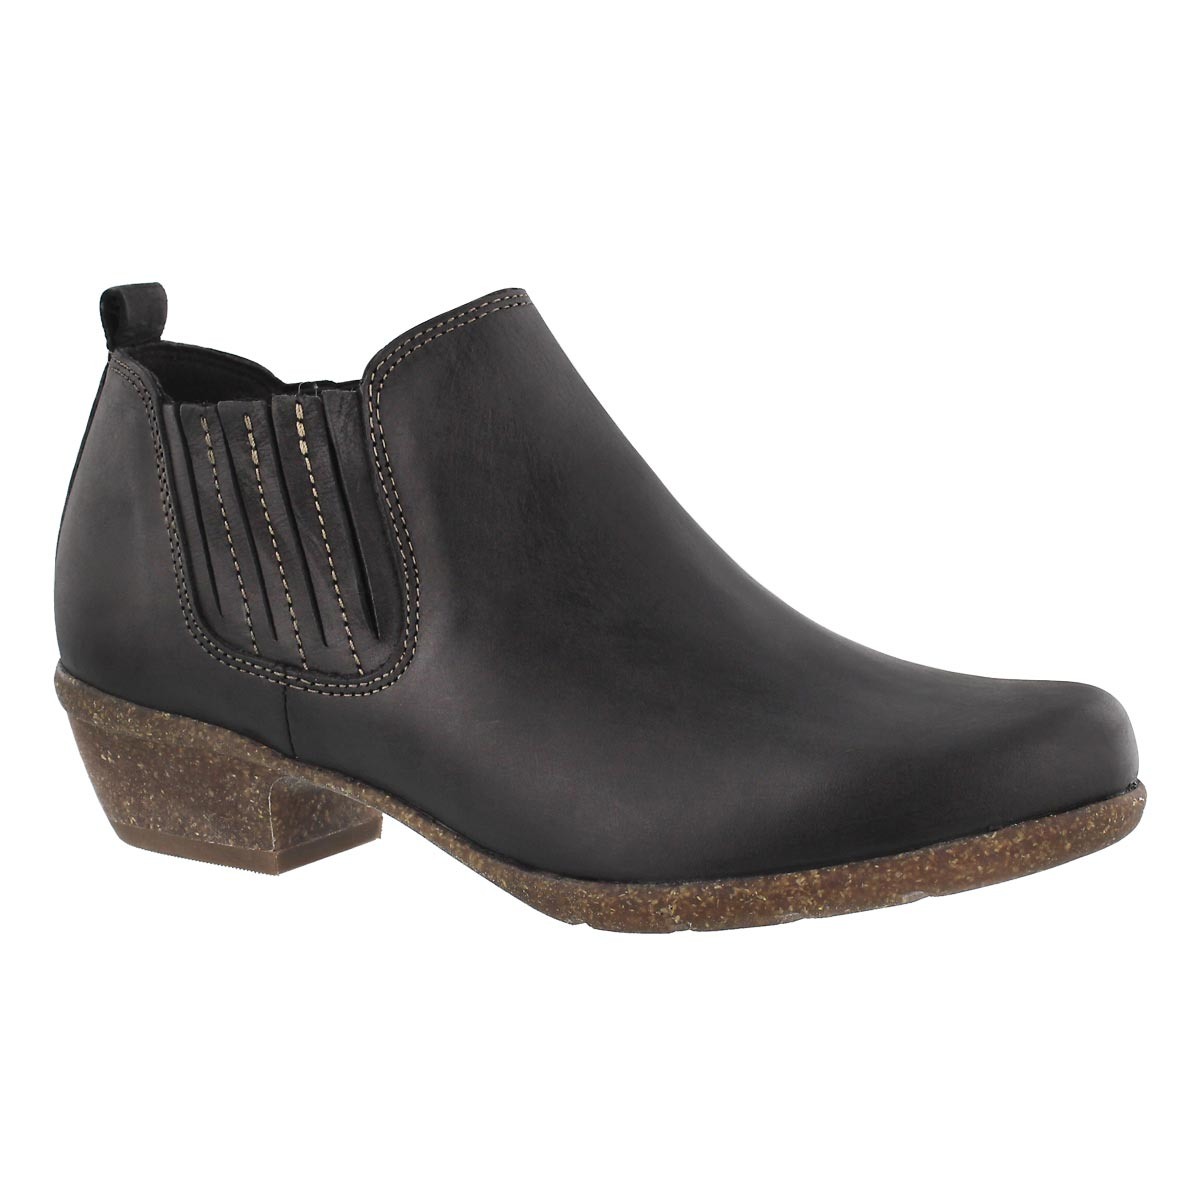 Women's WILROSE JADE black slip on casual boots